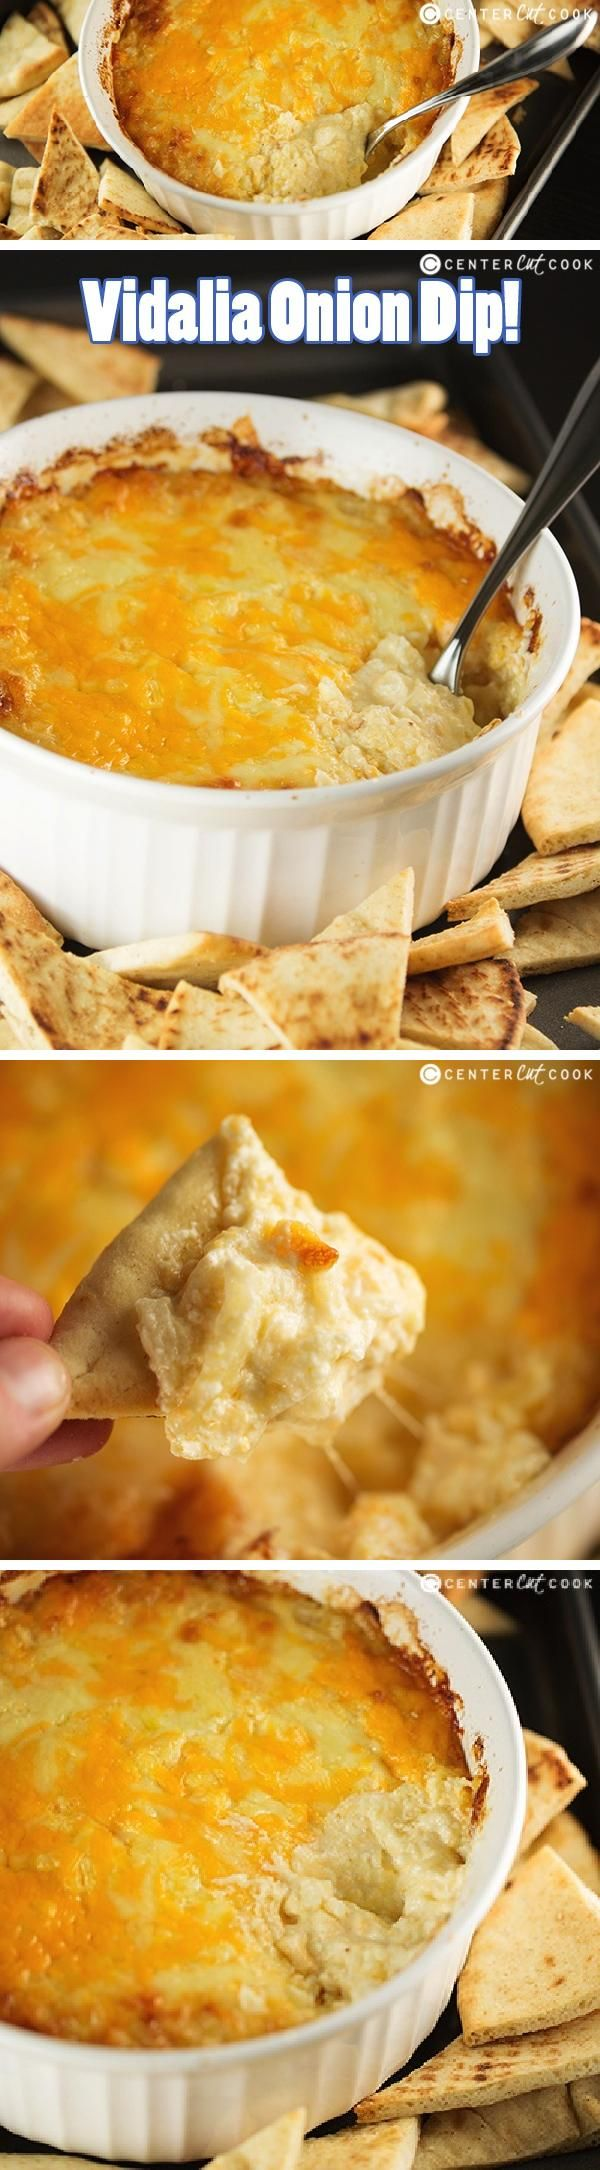 VIDALIA ONION DIP Recipe made from scratch with cream cheese, swiss cheese, cheddar cheese, and finely chopped vidalia onions baked until golden brown and bubbly! This is a super easy recipe and the result is a creamy delicious dip everyone will love.